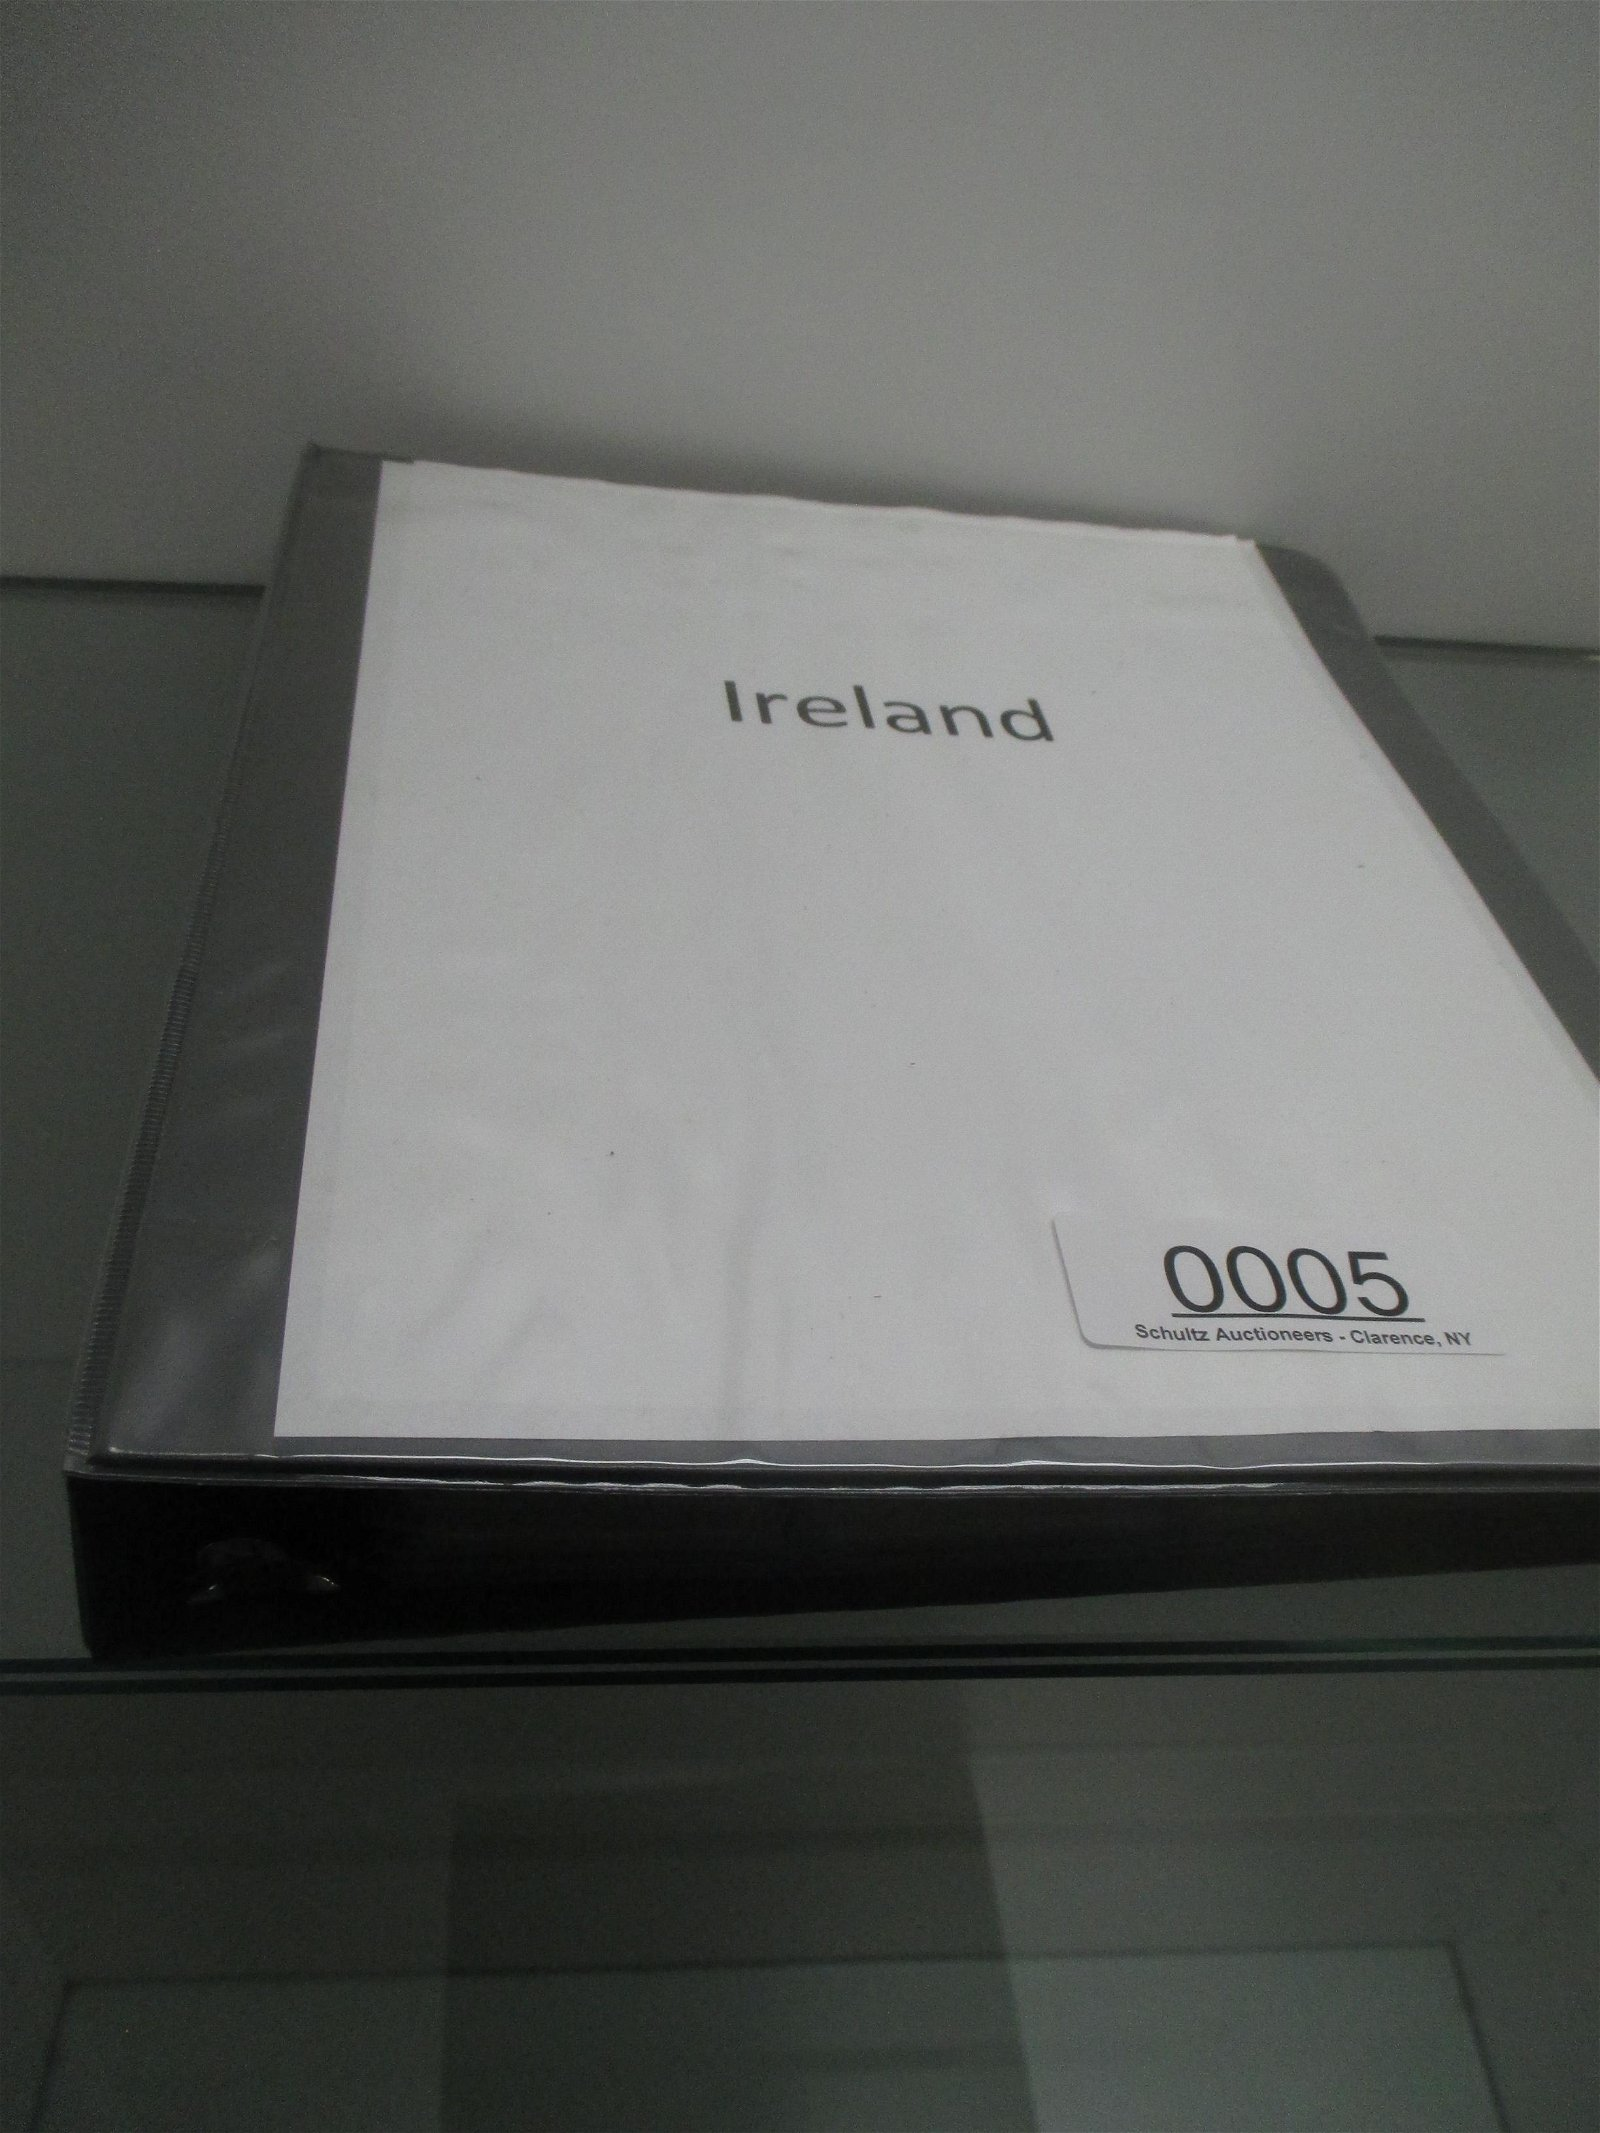 BINDER WITHAPPROX 135 COINS FROM IRELAND